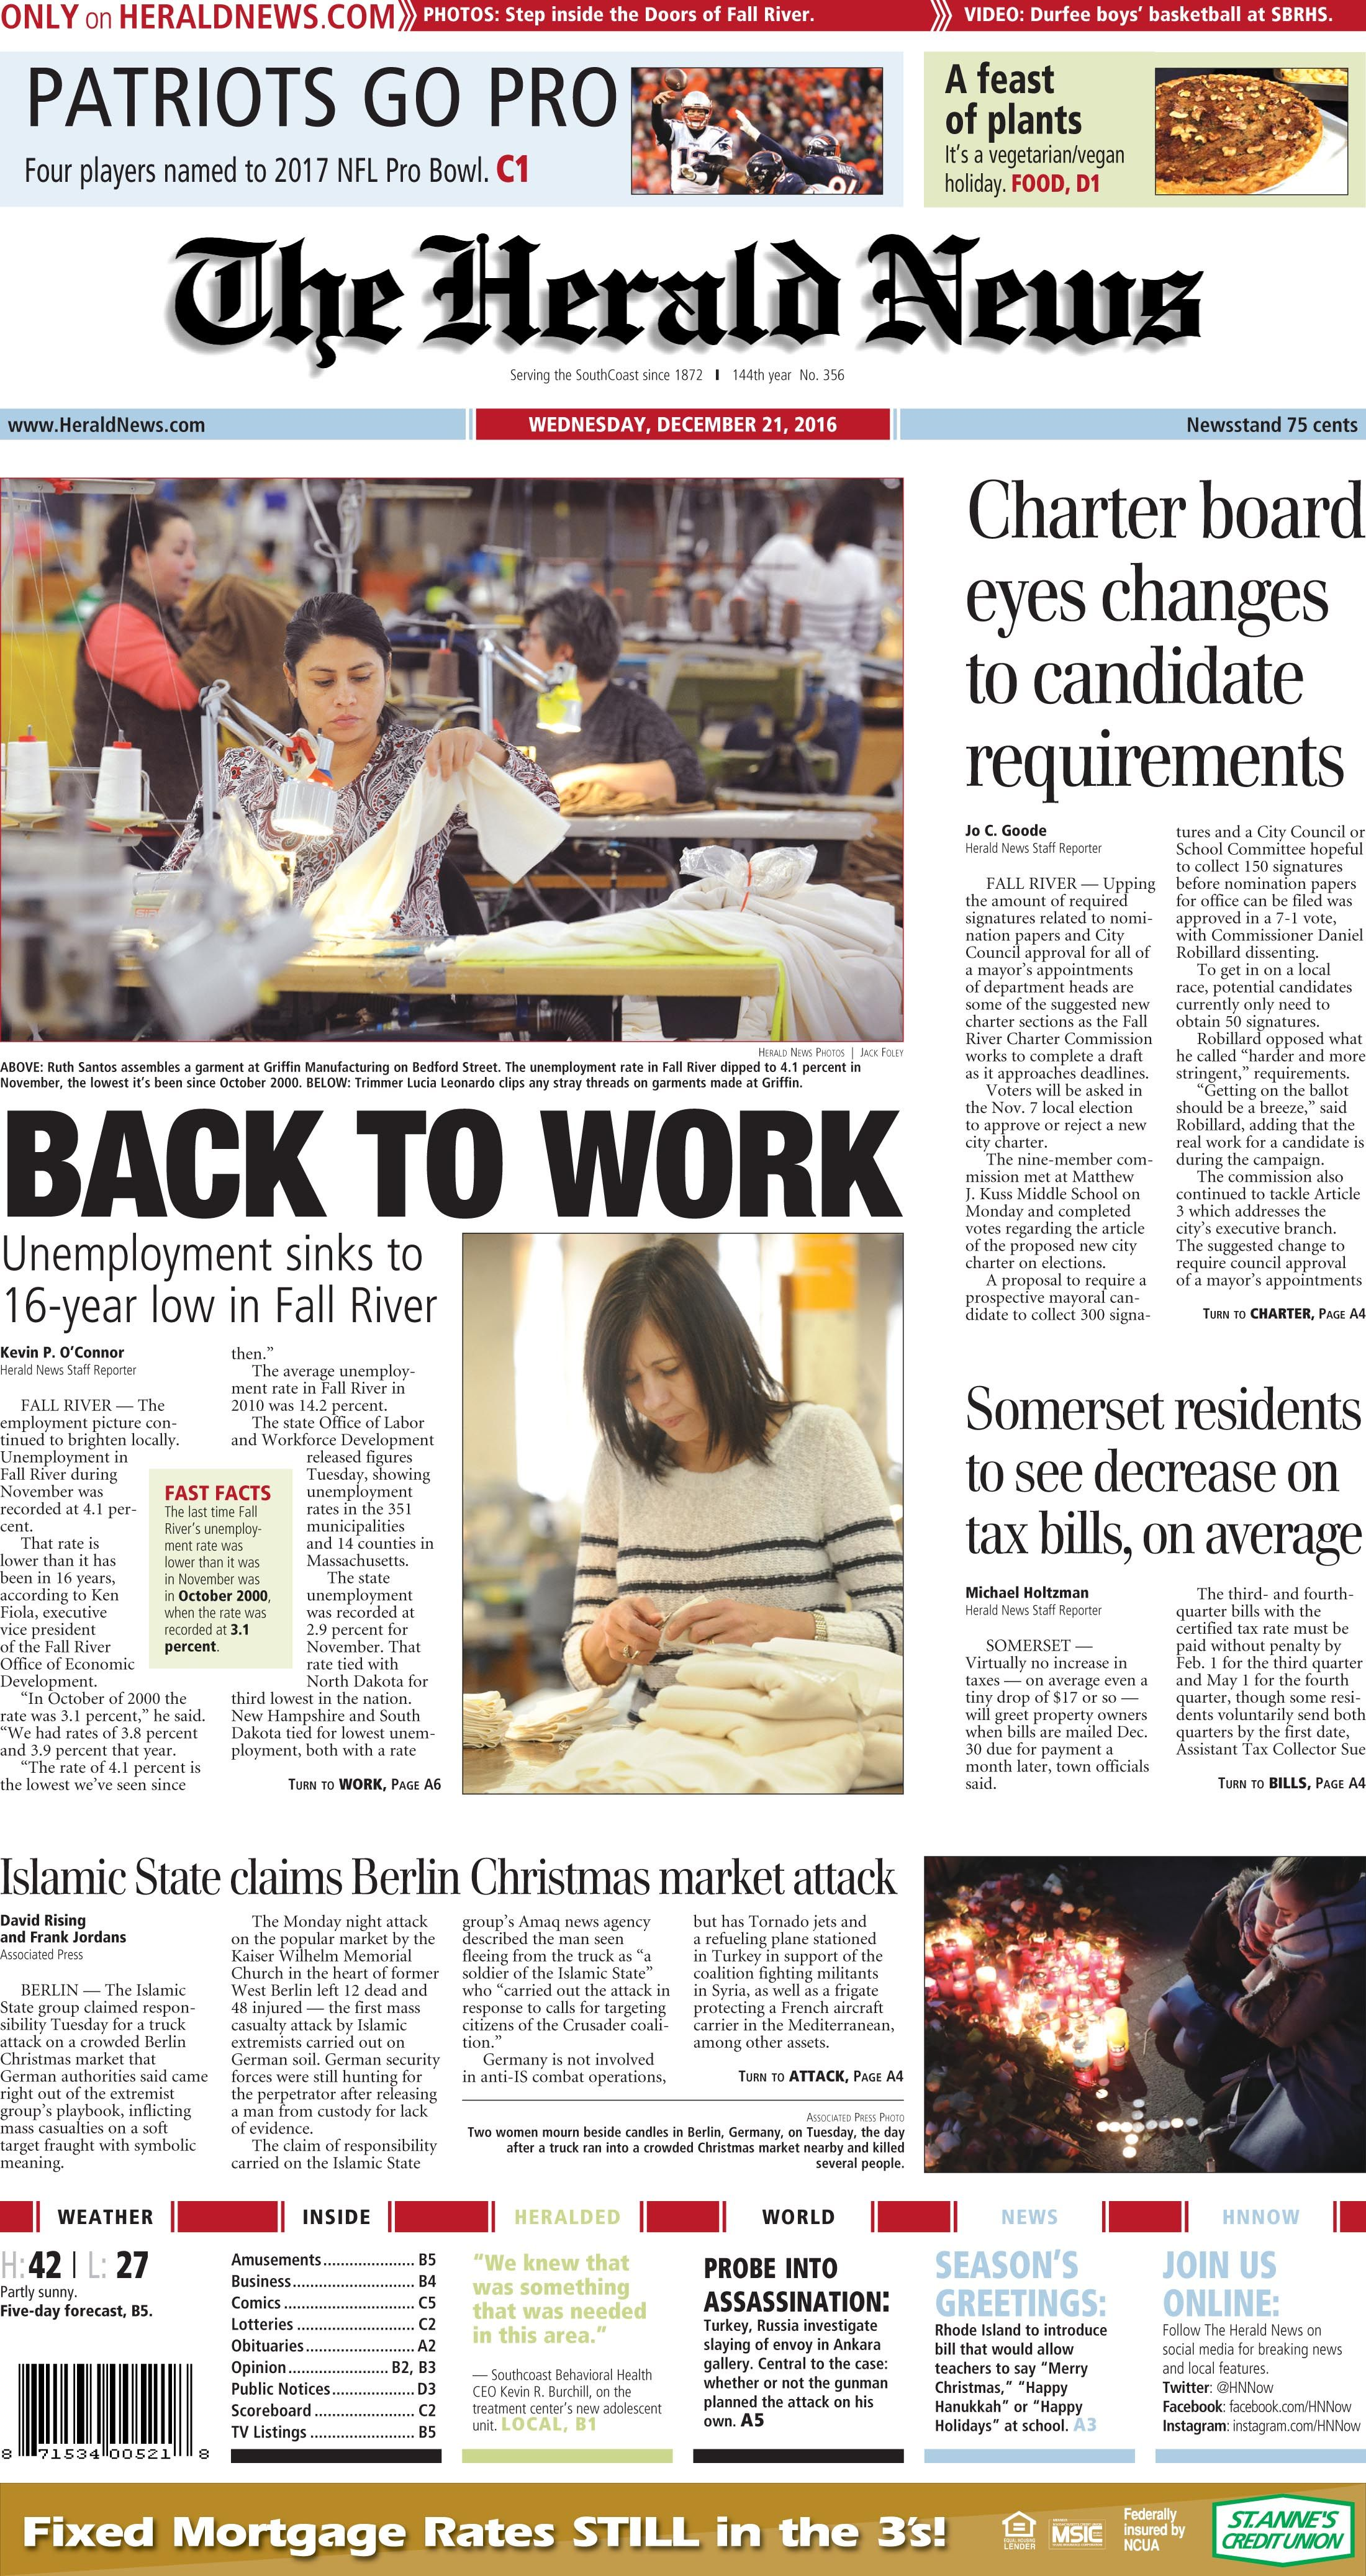 The front page of The Herald News for Wednesday, Dec. 6, 6